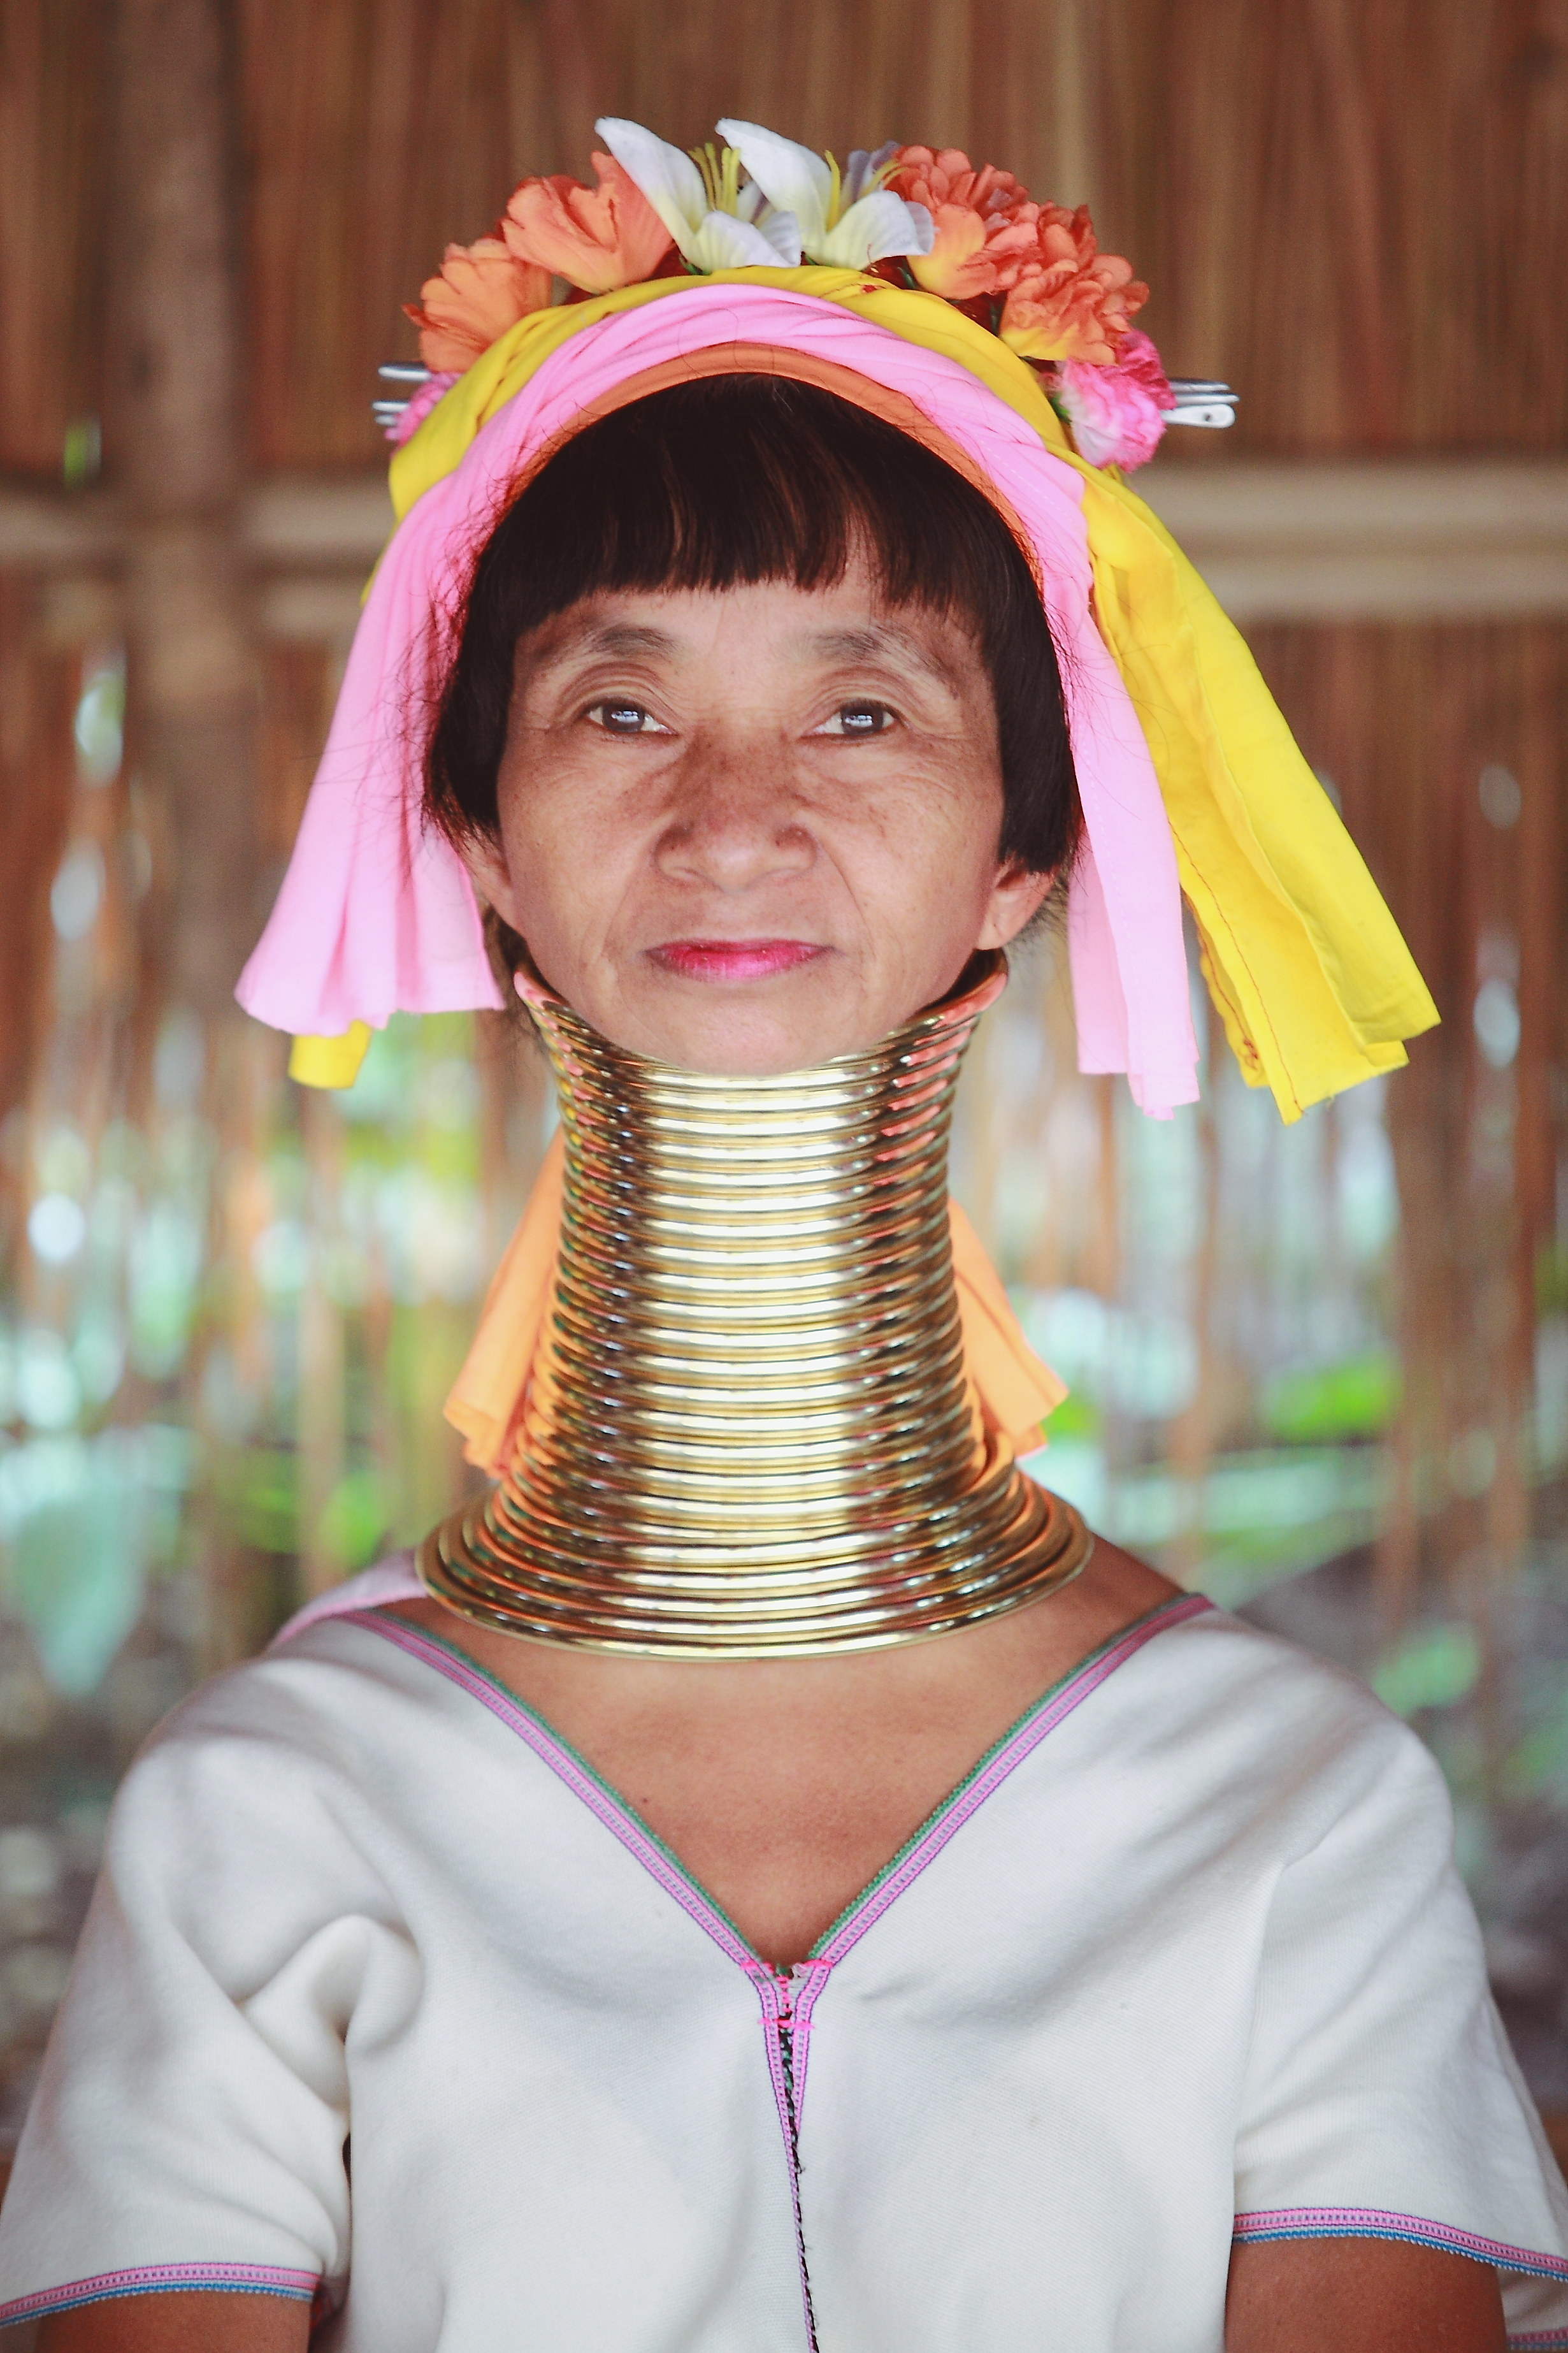 Photo of a woman's elongated neck with brass coils